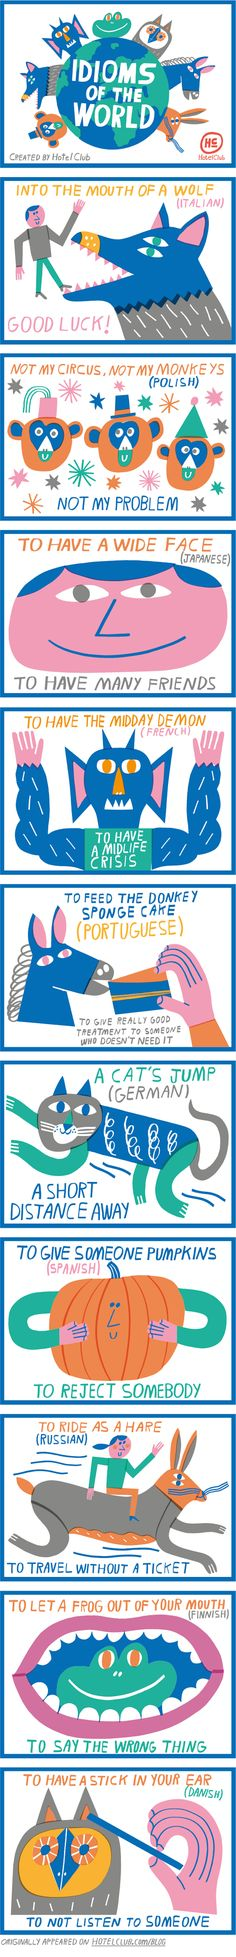 Idioms of the World, via @teawashere_.We love these illustrations!